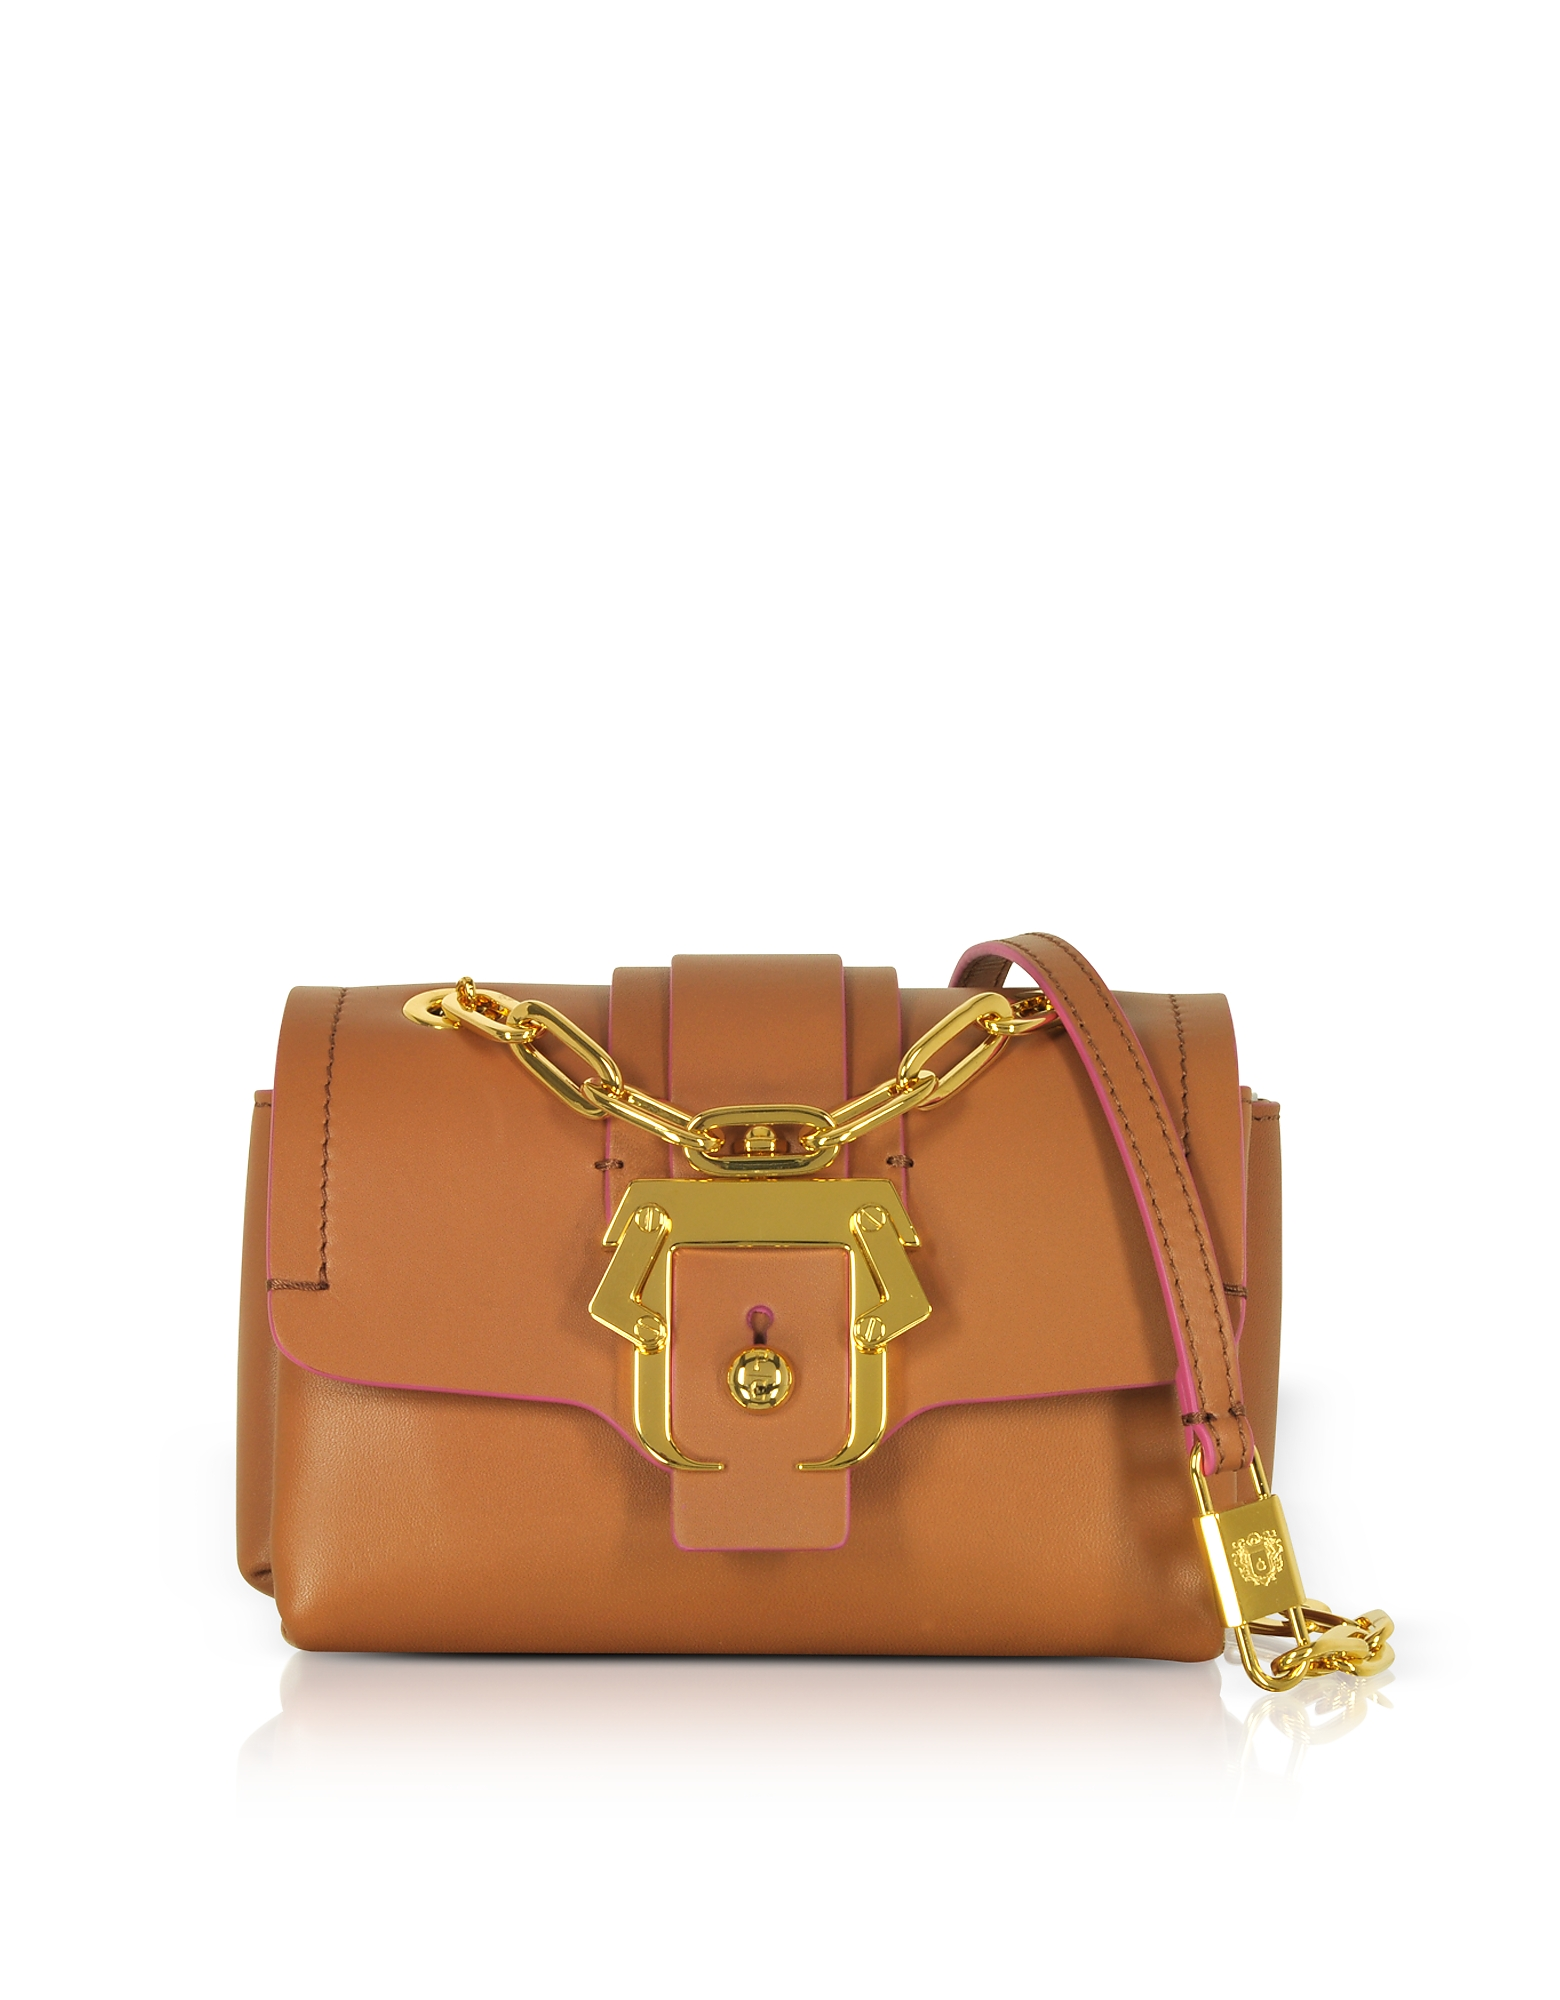 Image of Paula Cademartori Designer Handbags, Kaia Monocolor Pecan Brown Shoulder Bag